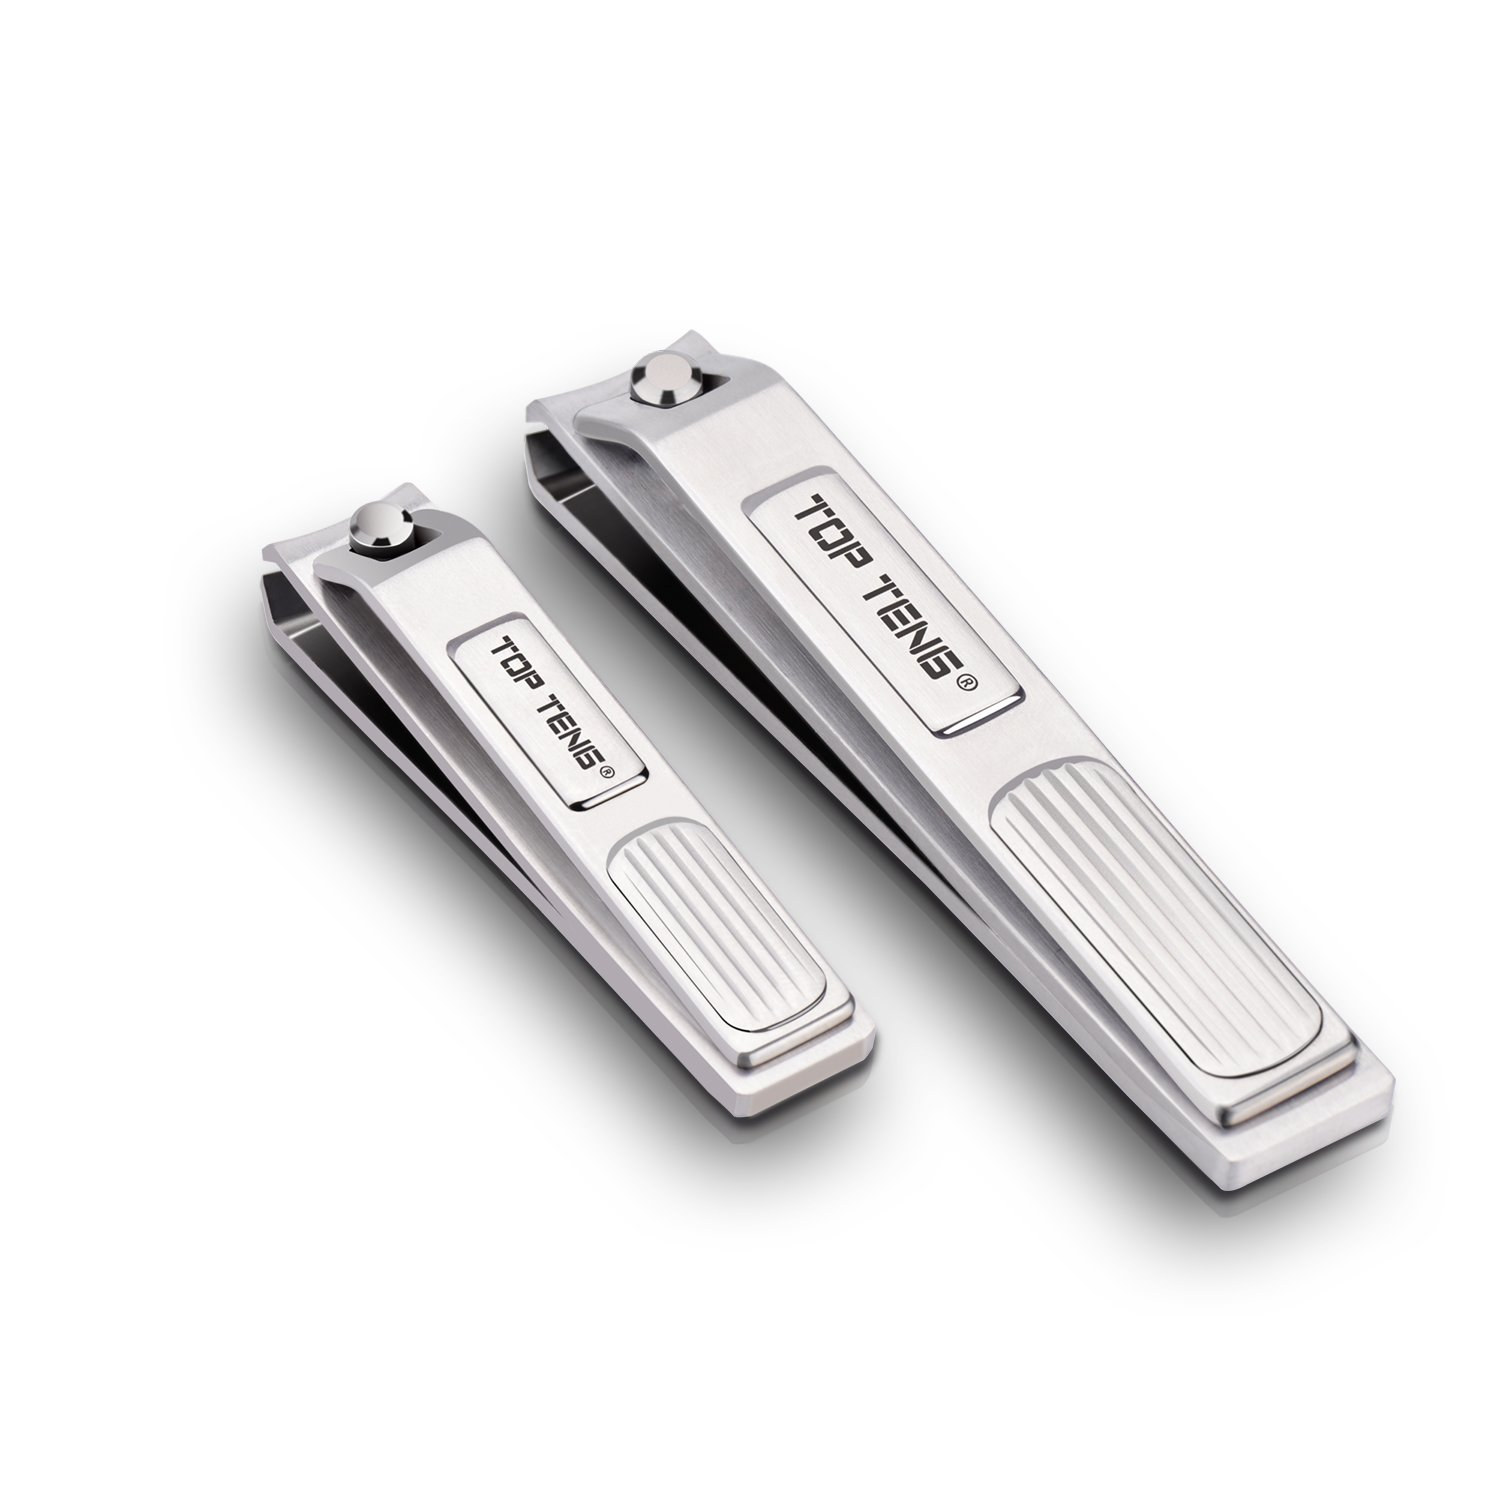 Amazon.com: TOP TENG® Nail Clipper/Nipper for Thick or Ingrown ...